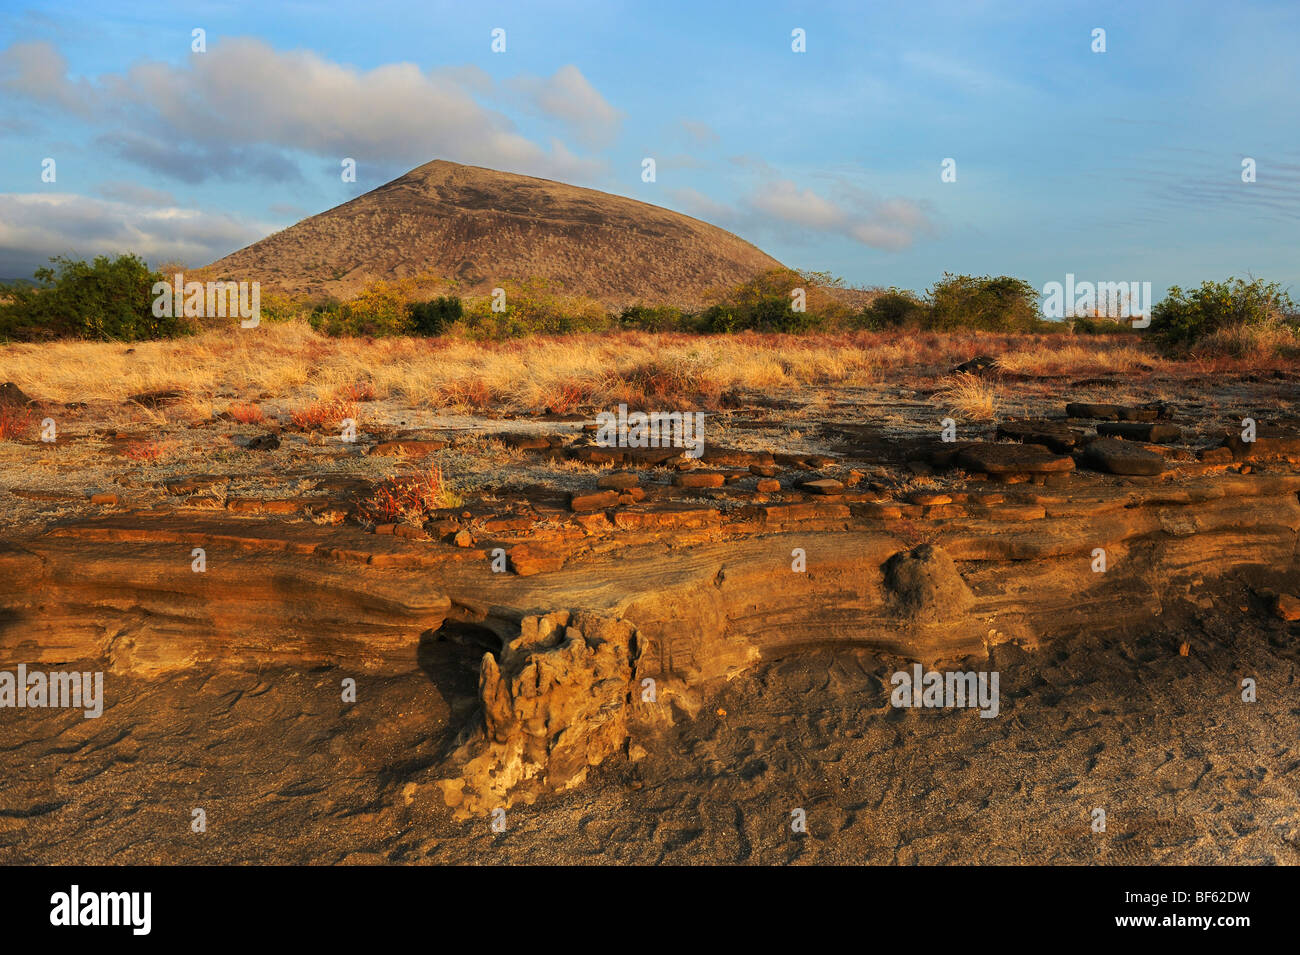 Puerto Egas Bay, Santiago Island, Galapagos Islands, Ecuador, South America Stock Photo